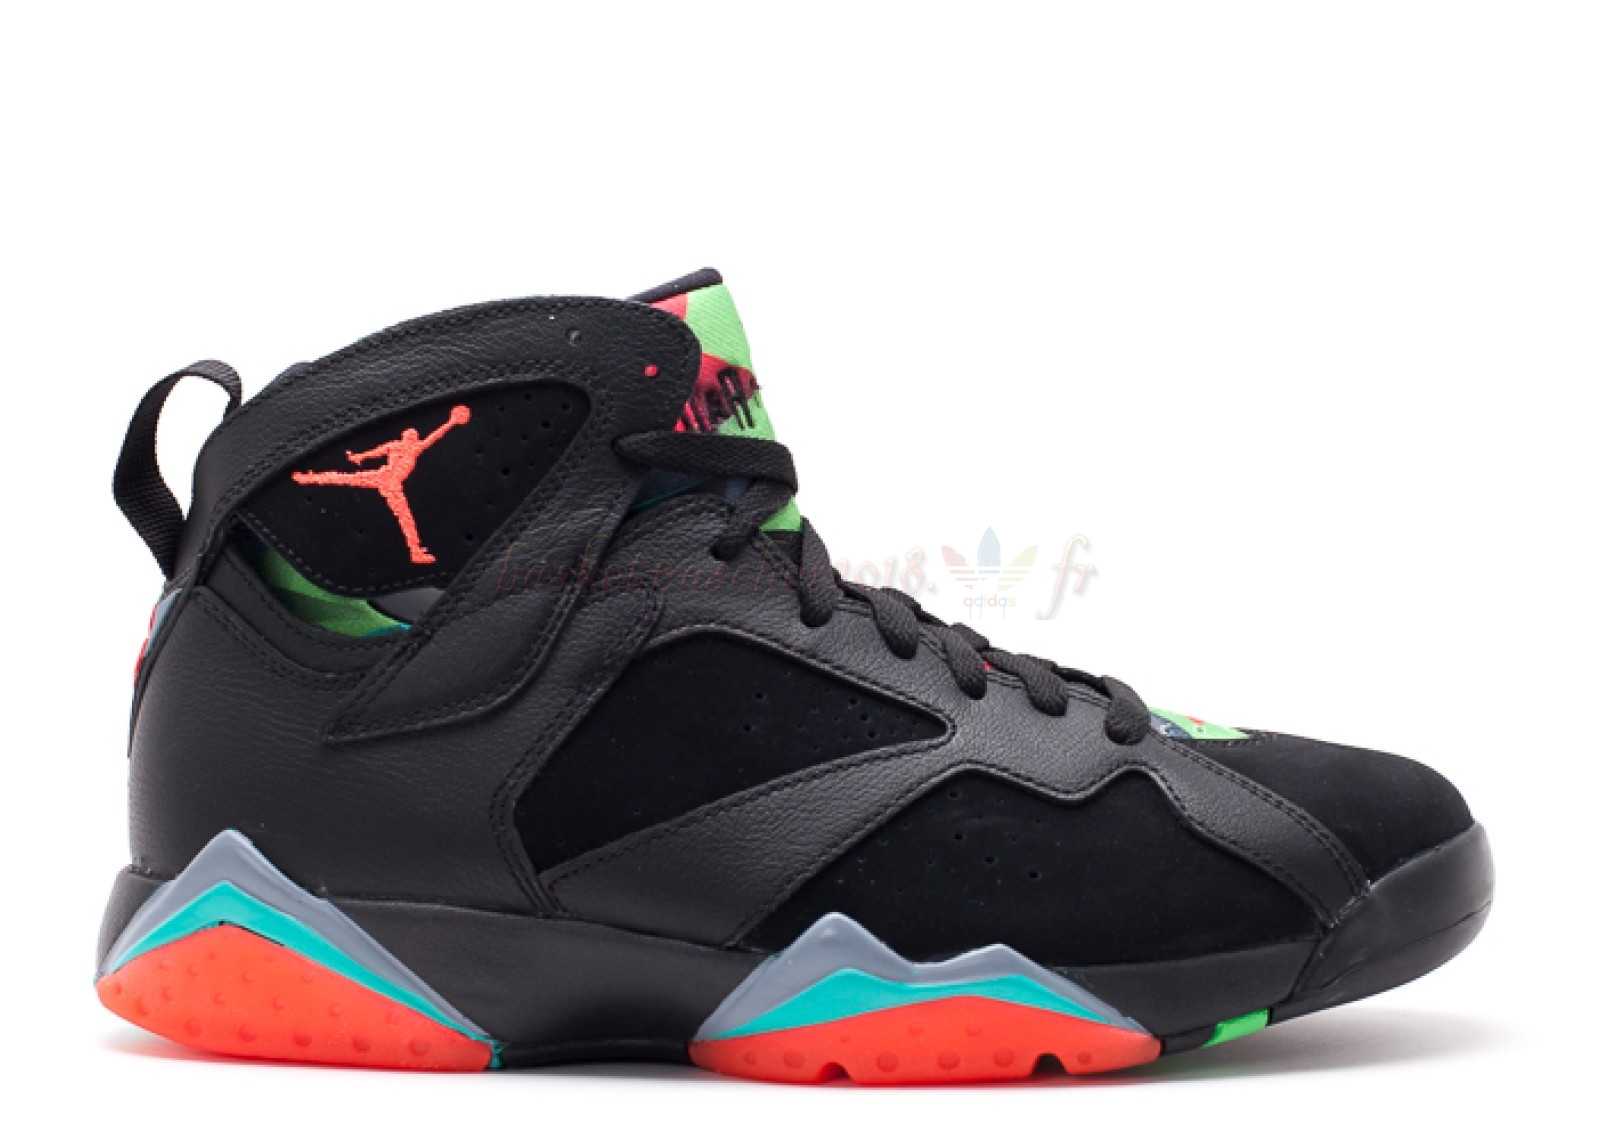 "Vente Chaude Chaussures De Basketball Homme Air Jordan 7 Retro ""30Th Barcelona Nights"" Noir Orange (705350-007) Pas Cher"